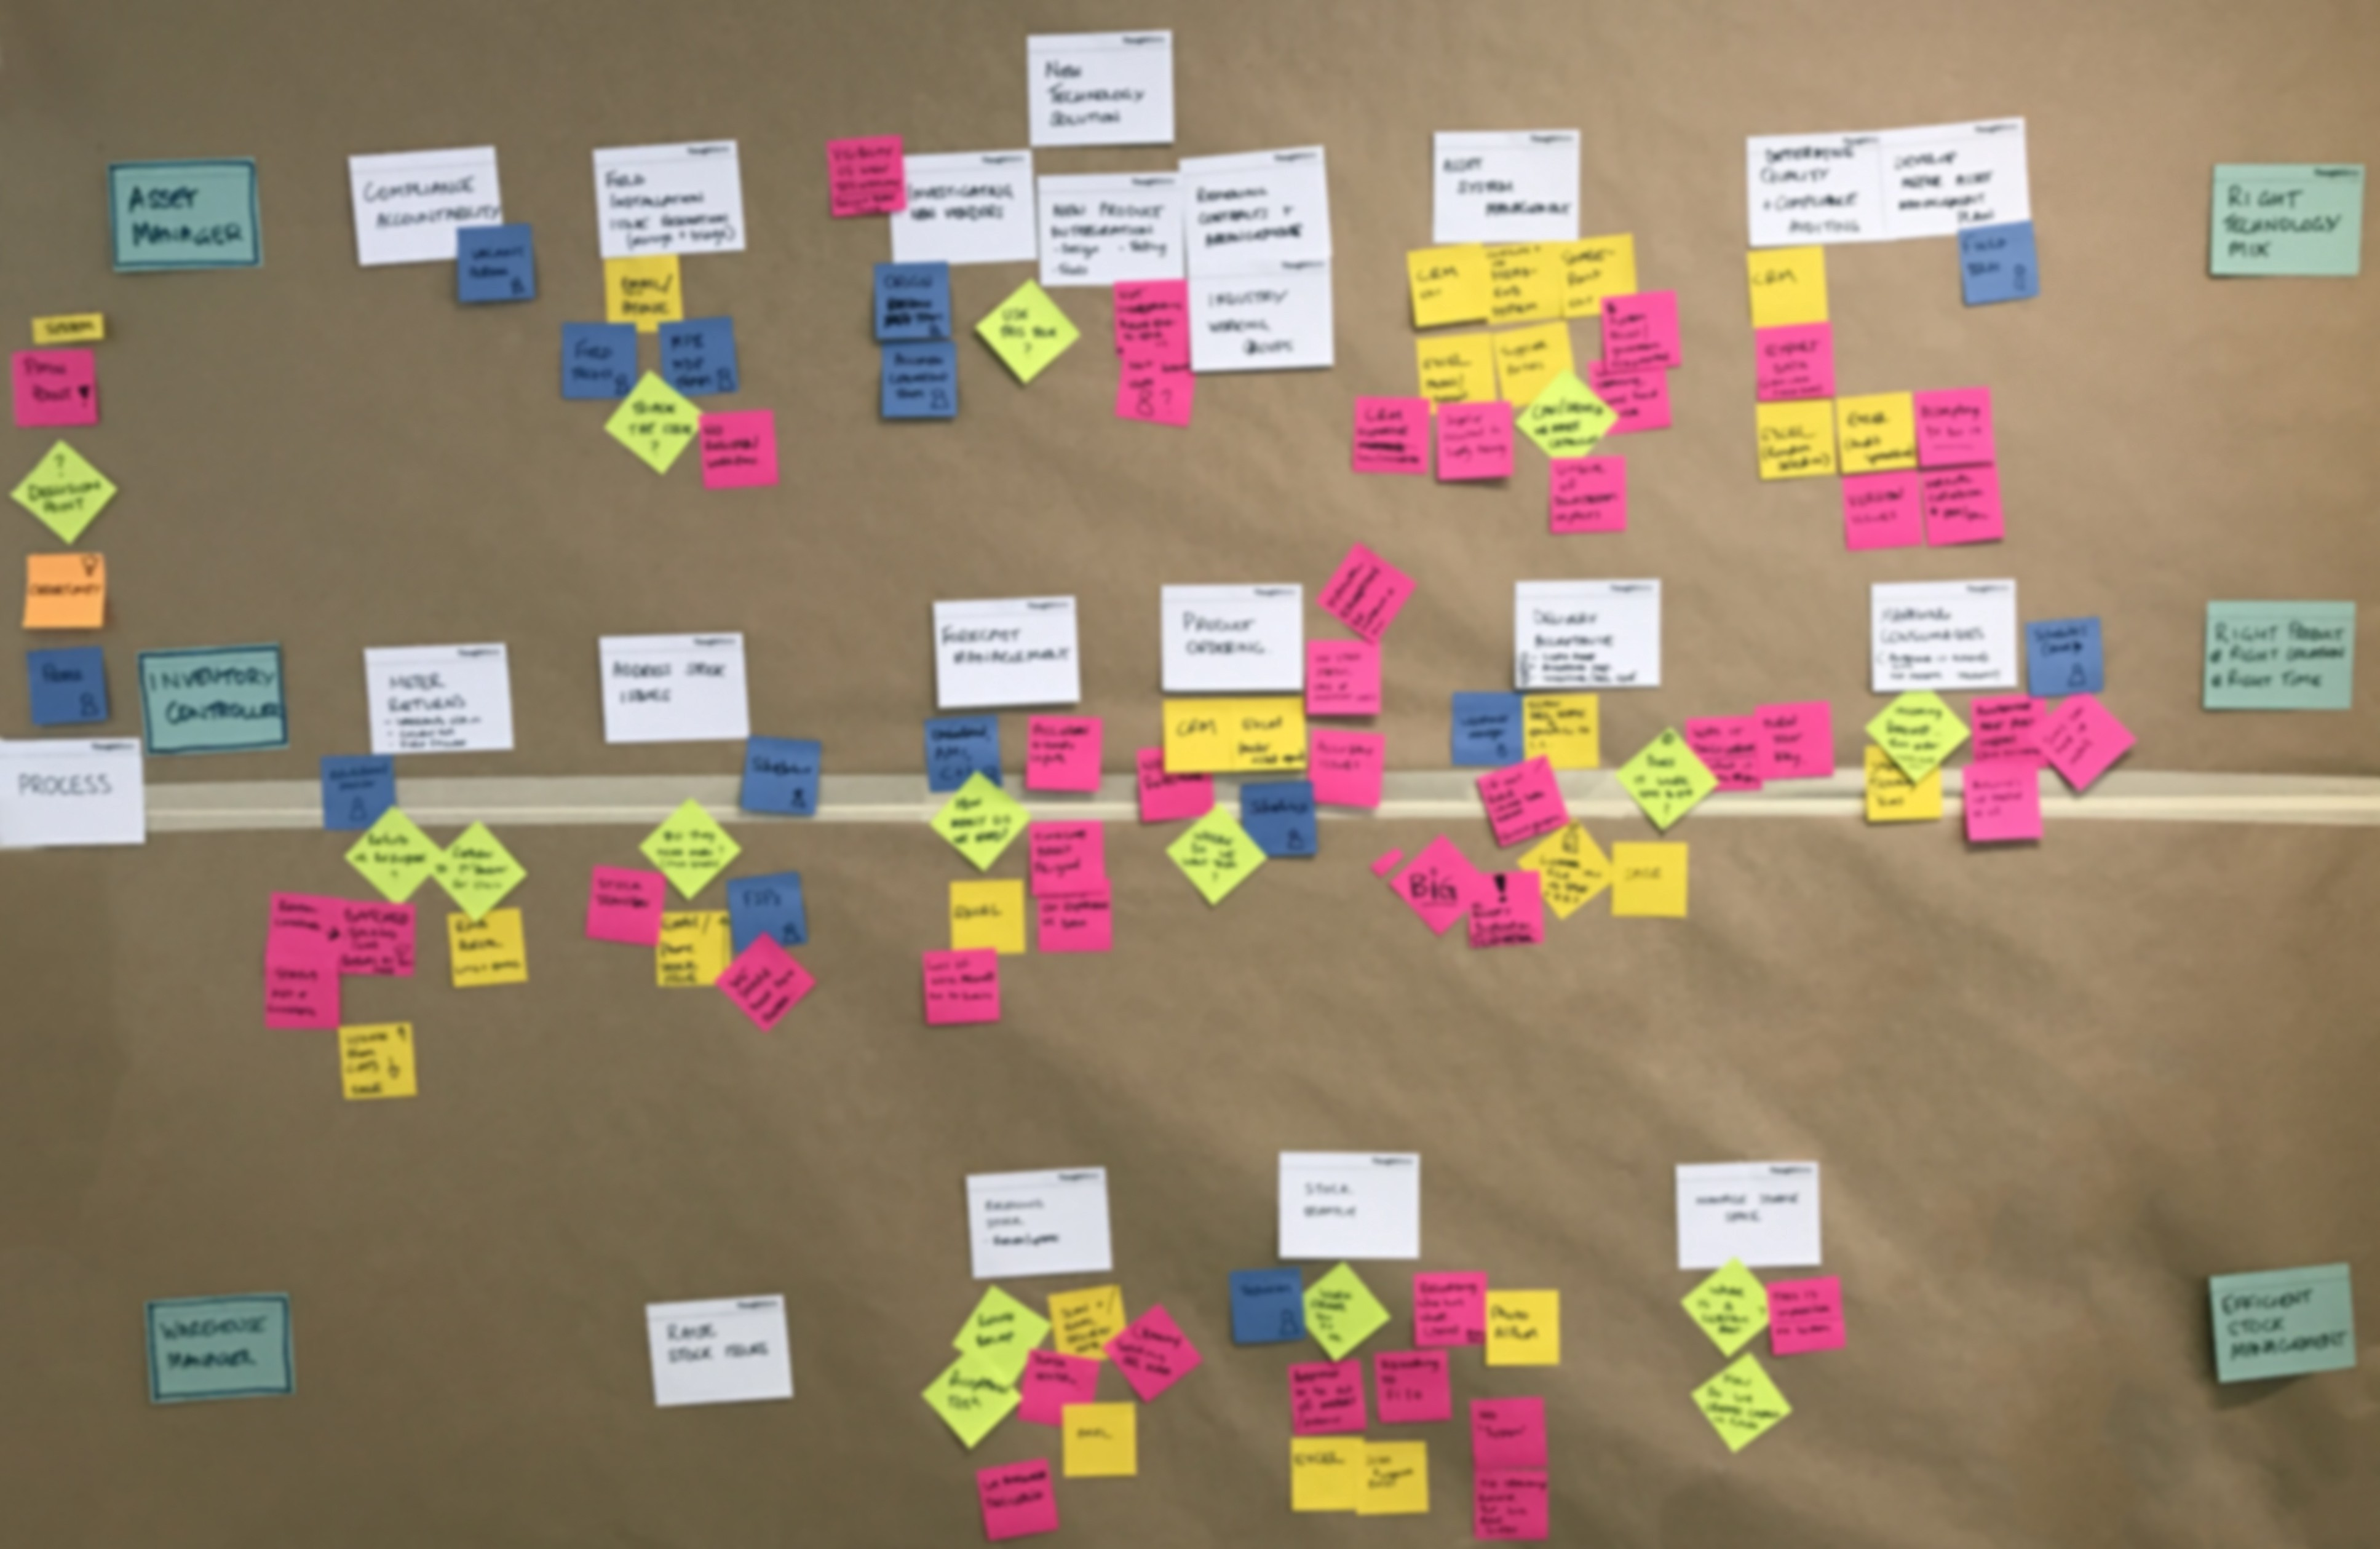 Sequentially ordered sticky notes and index cards, depicting the user journey for the application